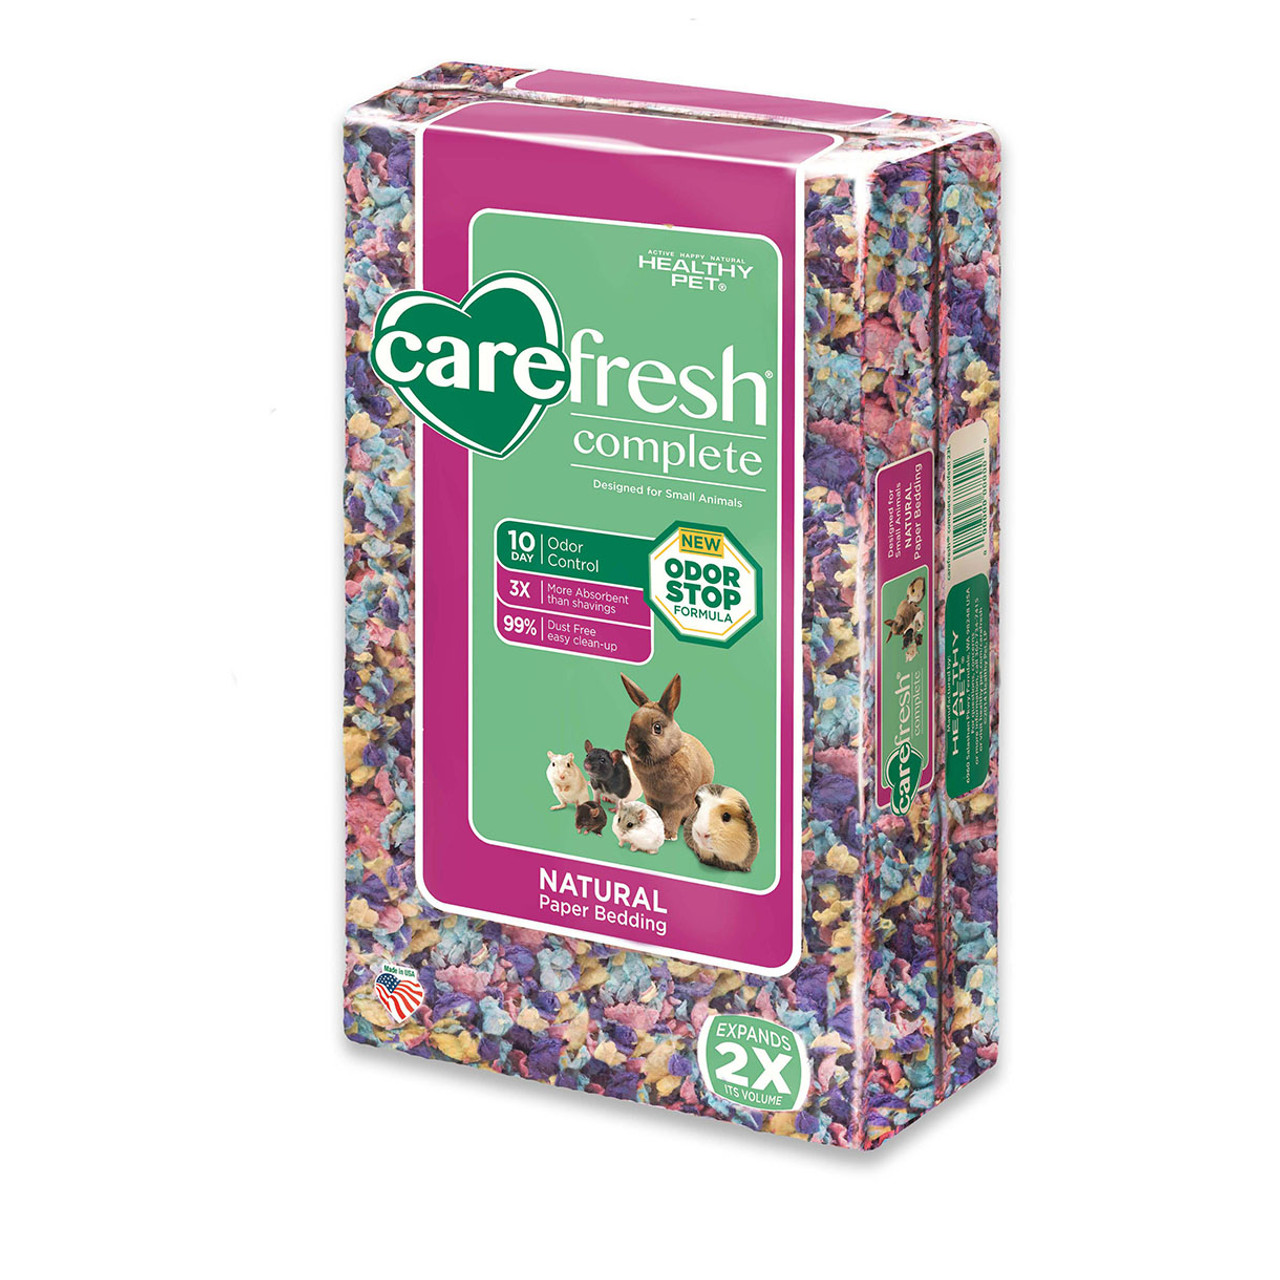 Carefresh Complete Colors Natural Paper Small Animal Bedding